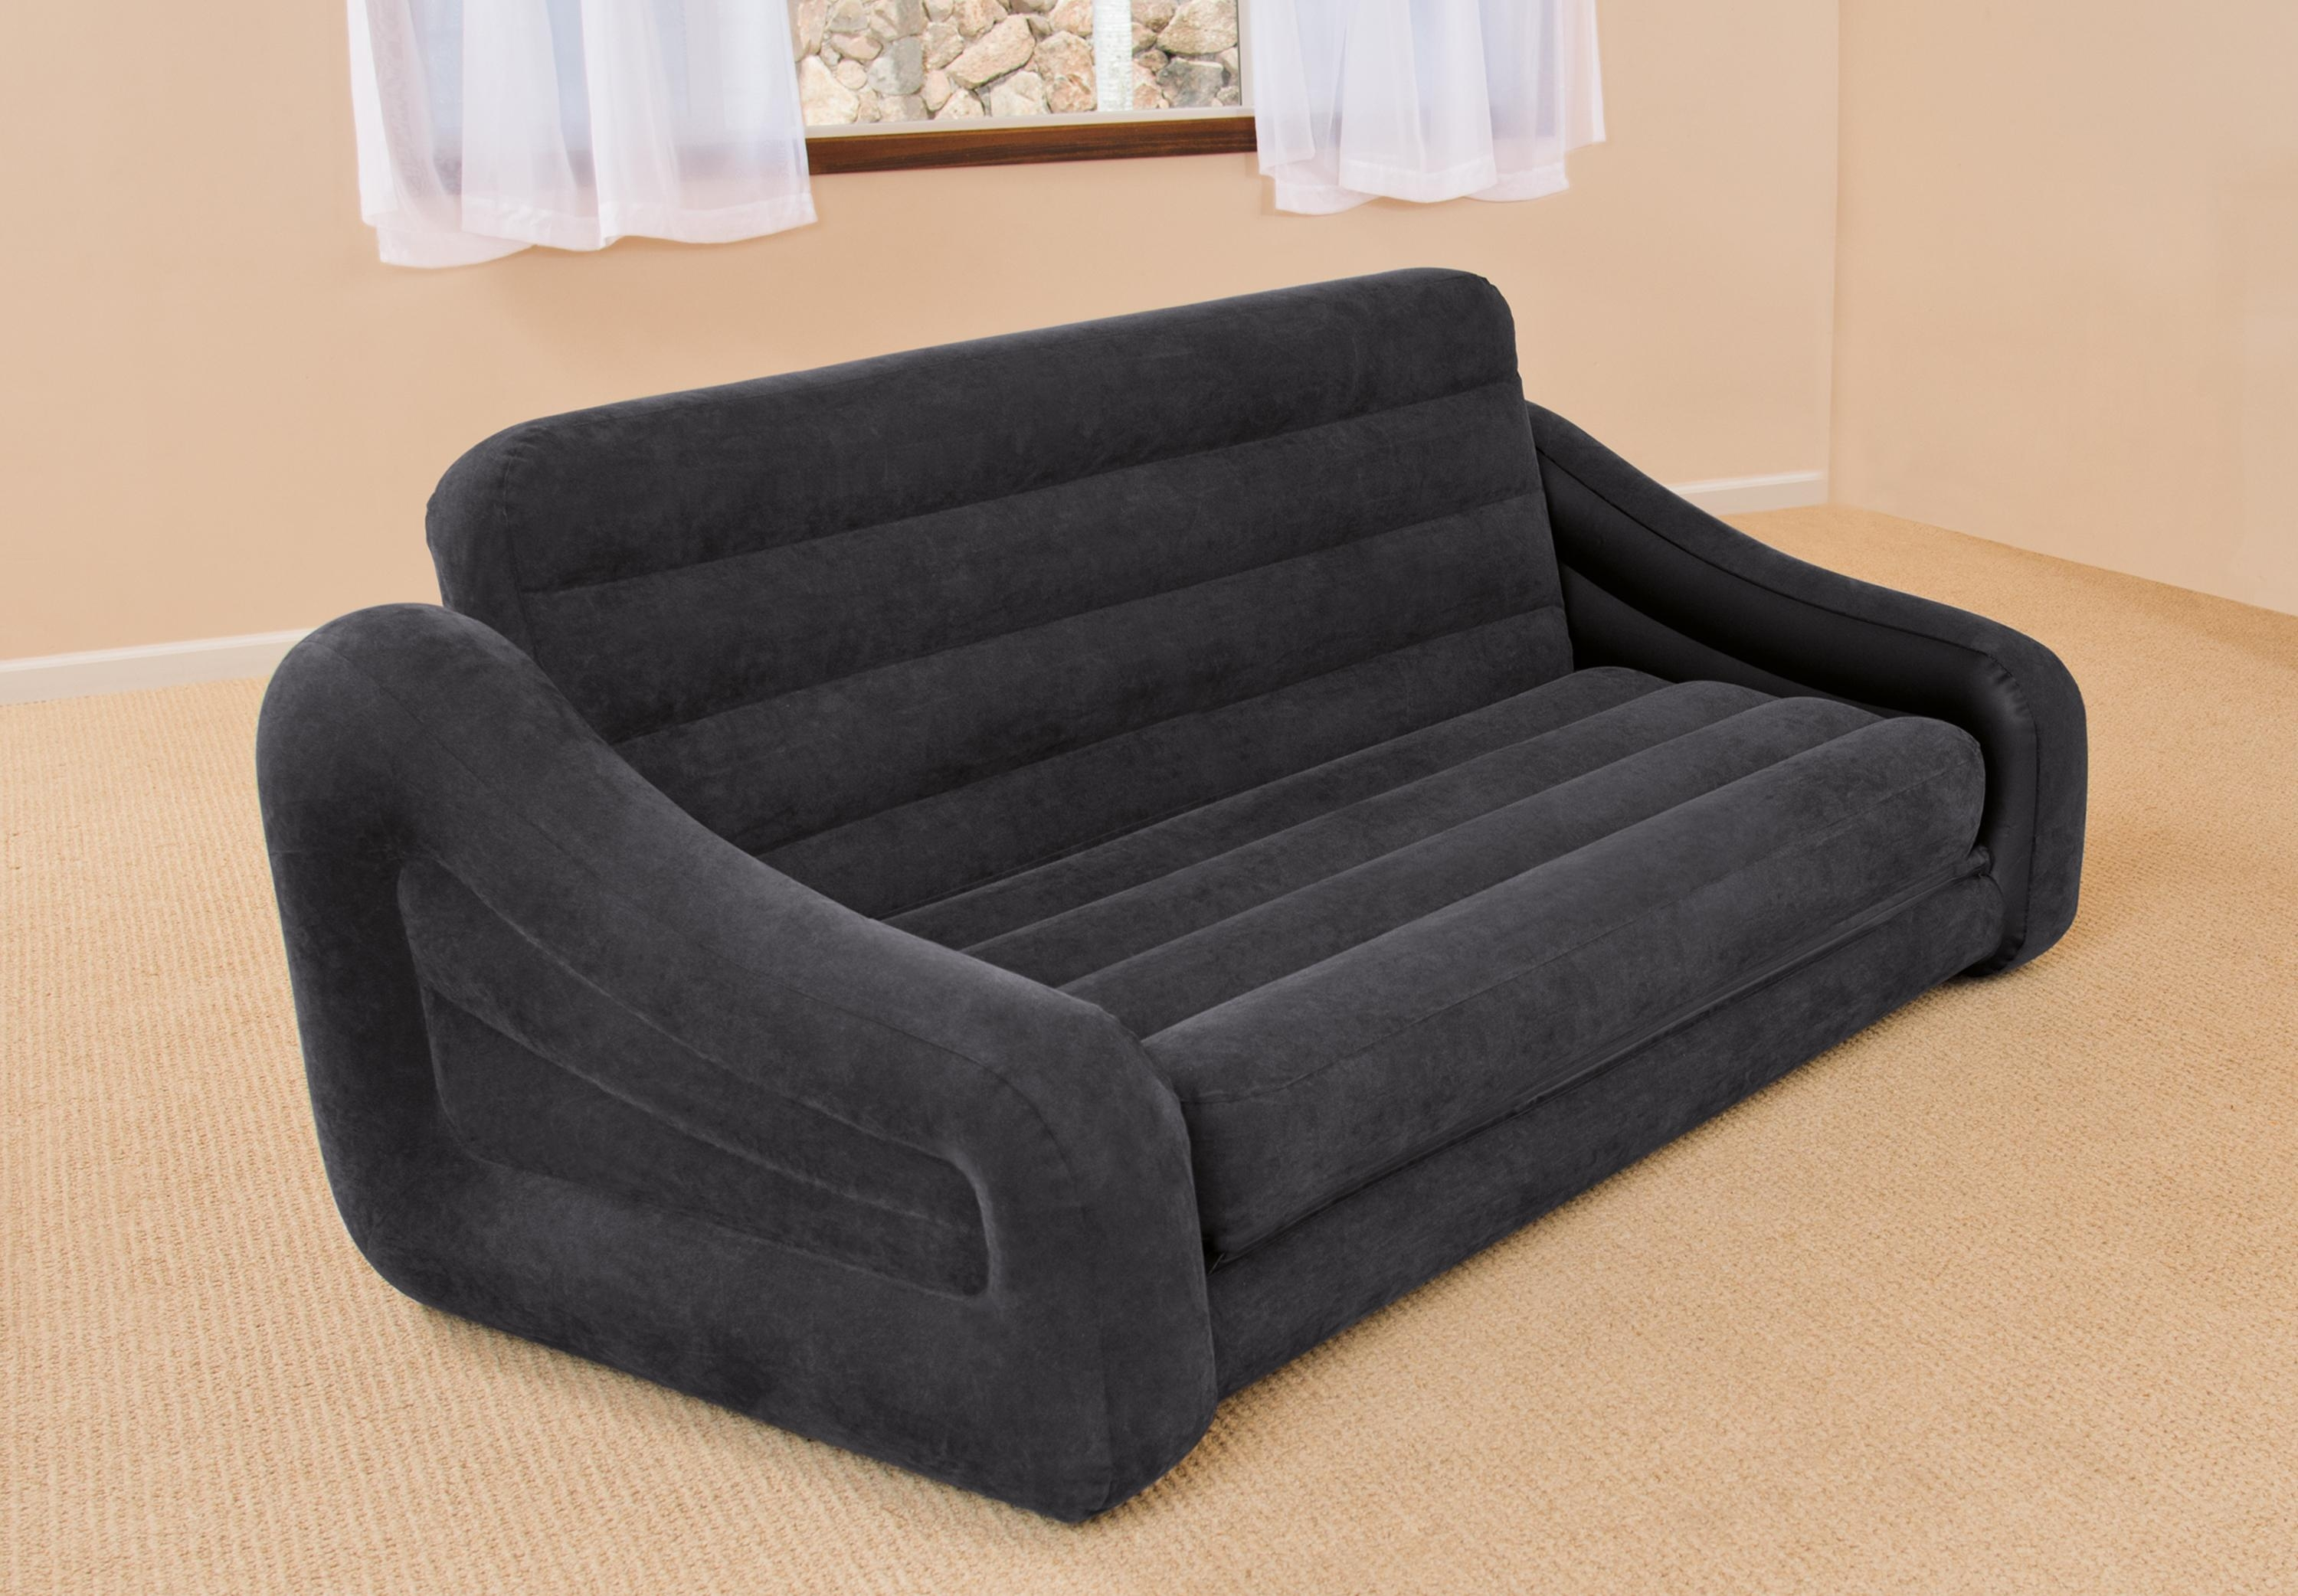 Intex Inflatable Pull Out Sofa & Queen Bed Mattress Sleeper W/ Ac Pertaining To Intex Air Couches (Image 12 of 20)